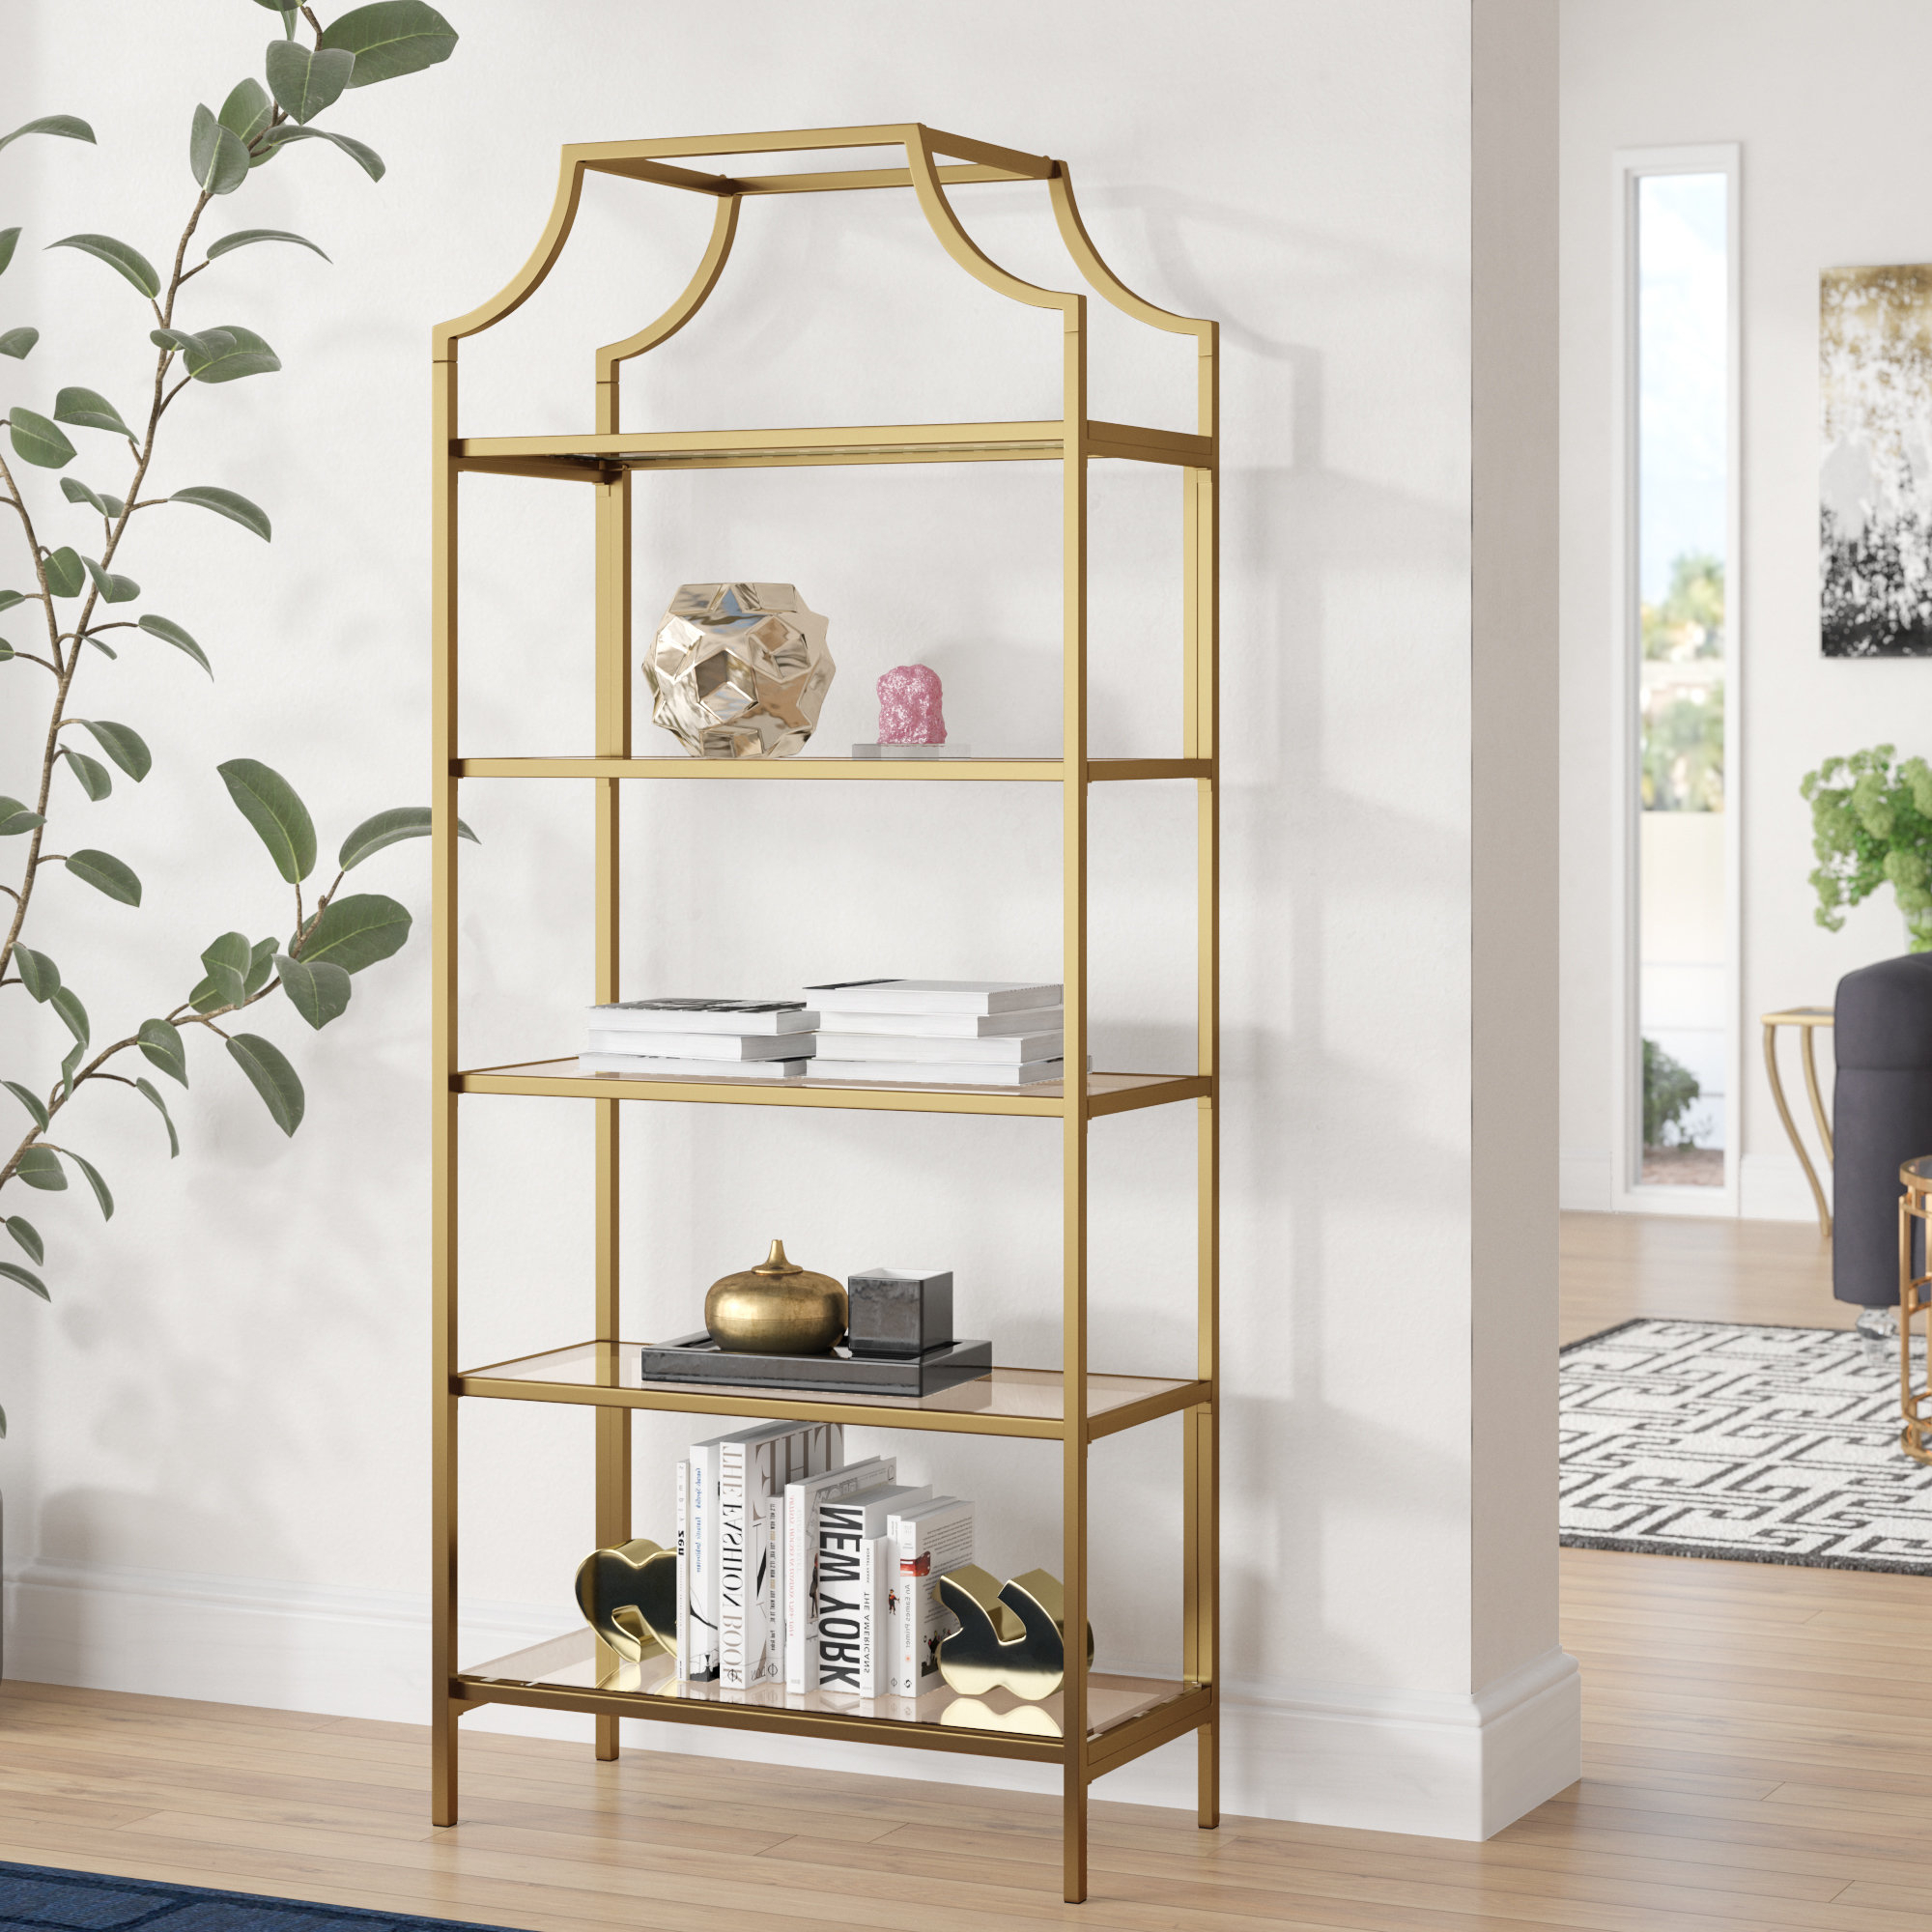 Annabesook Etagere Bookcases With Well Known Etagere Glass Shelves (Gallery 6 of 20)